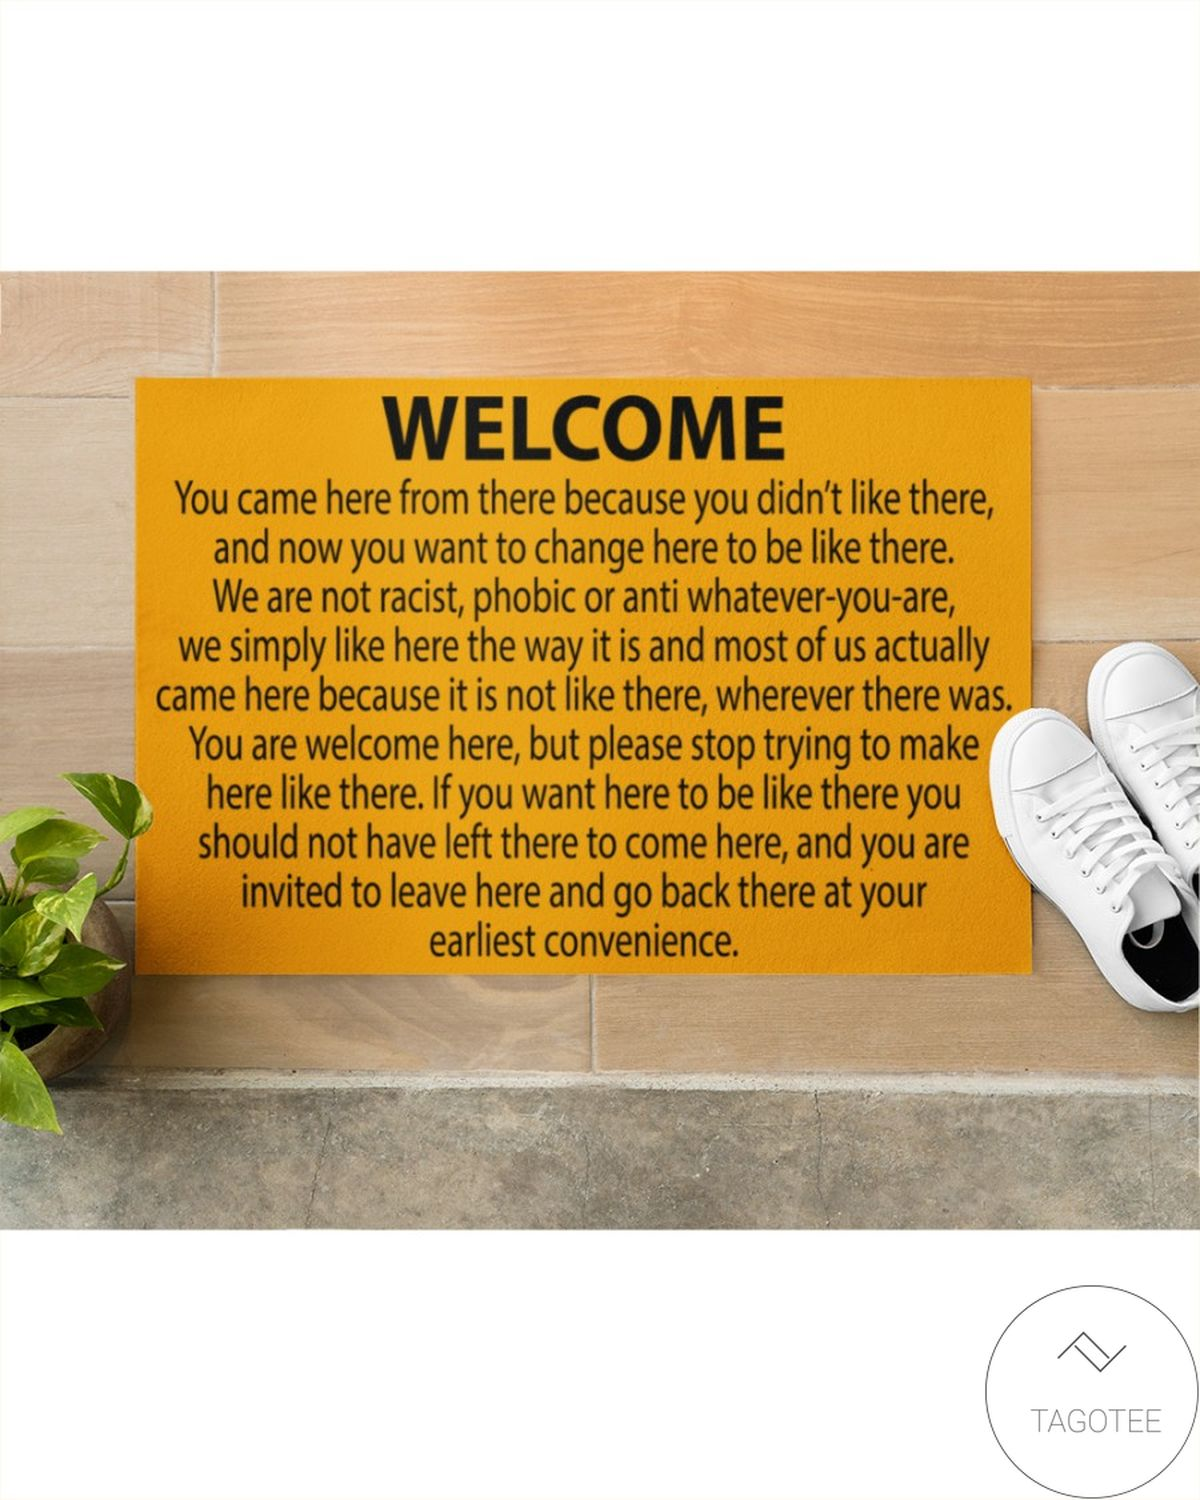 Sale Off Welcome You Came Here From There Because You Didn't Like There Doormat